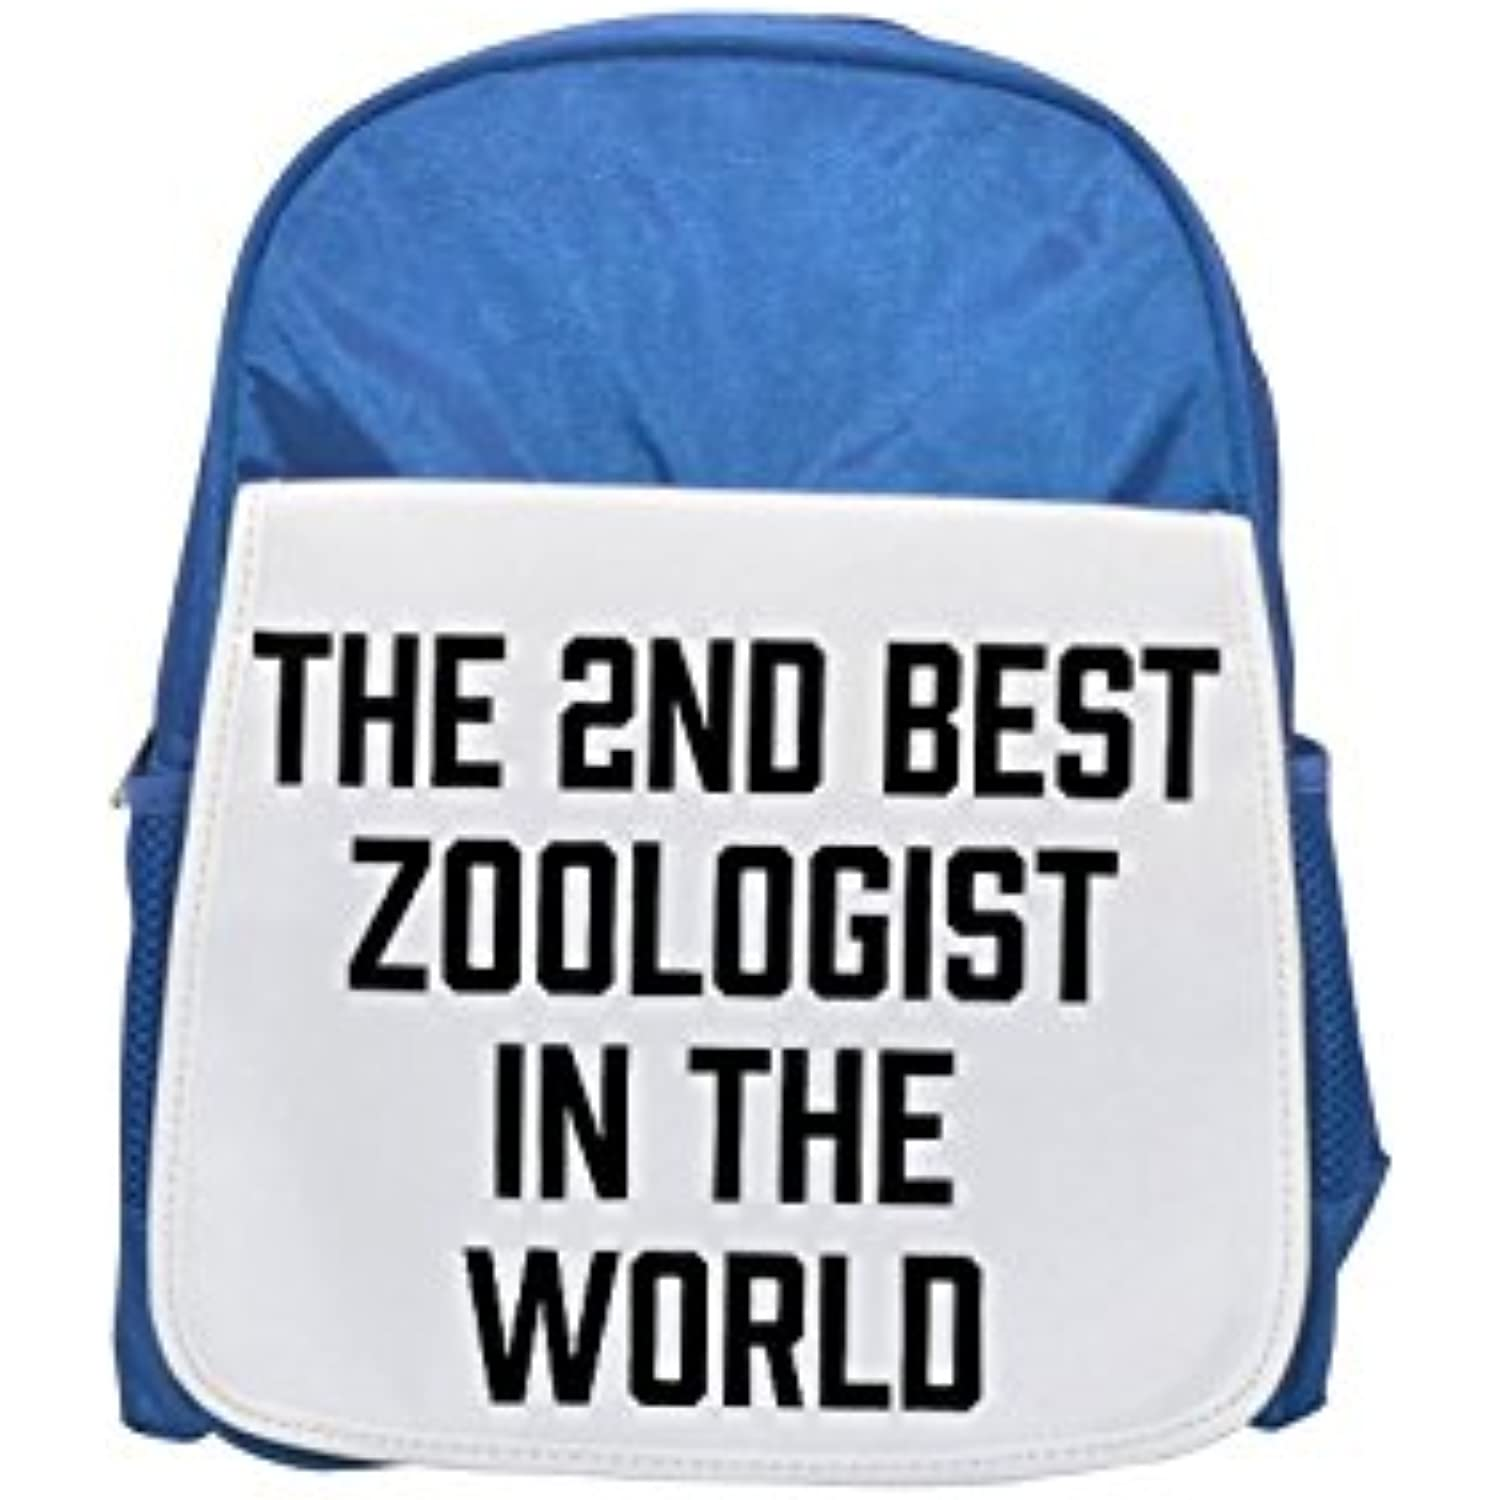 World's Bleu best Hypnotist printed kid's Bleu World's  backpack, Cute backpacks, cute small backpacks, cute Noir  backpack, cool Noir  backpack, fashion backpacks, large fashion backpacks, Noir  fashion backpack 60c681